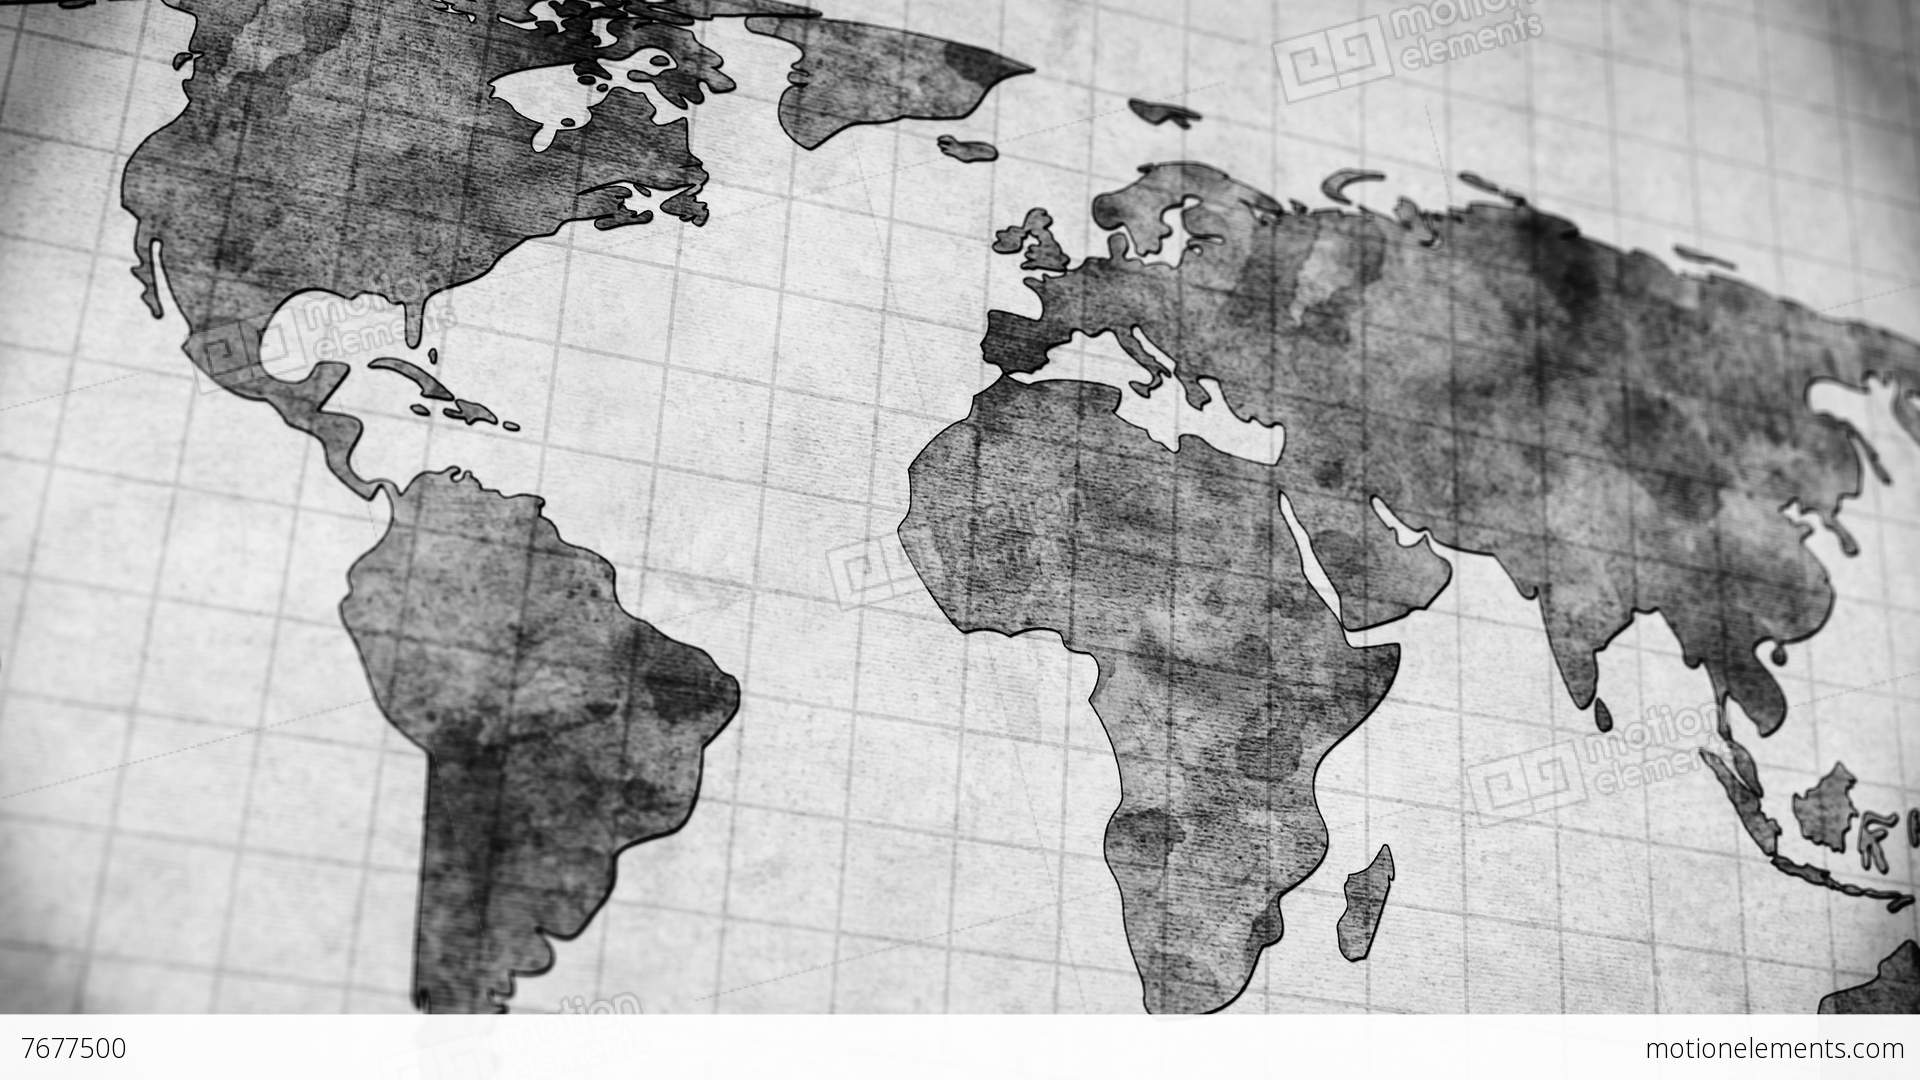 Vintage world map loopable panning animation 4k 4096x2304 vintage world map loopable panning animation 4k 4096x2304 videos de stock gumiabroncs